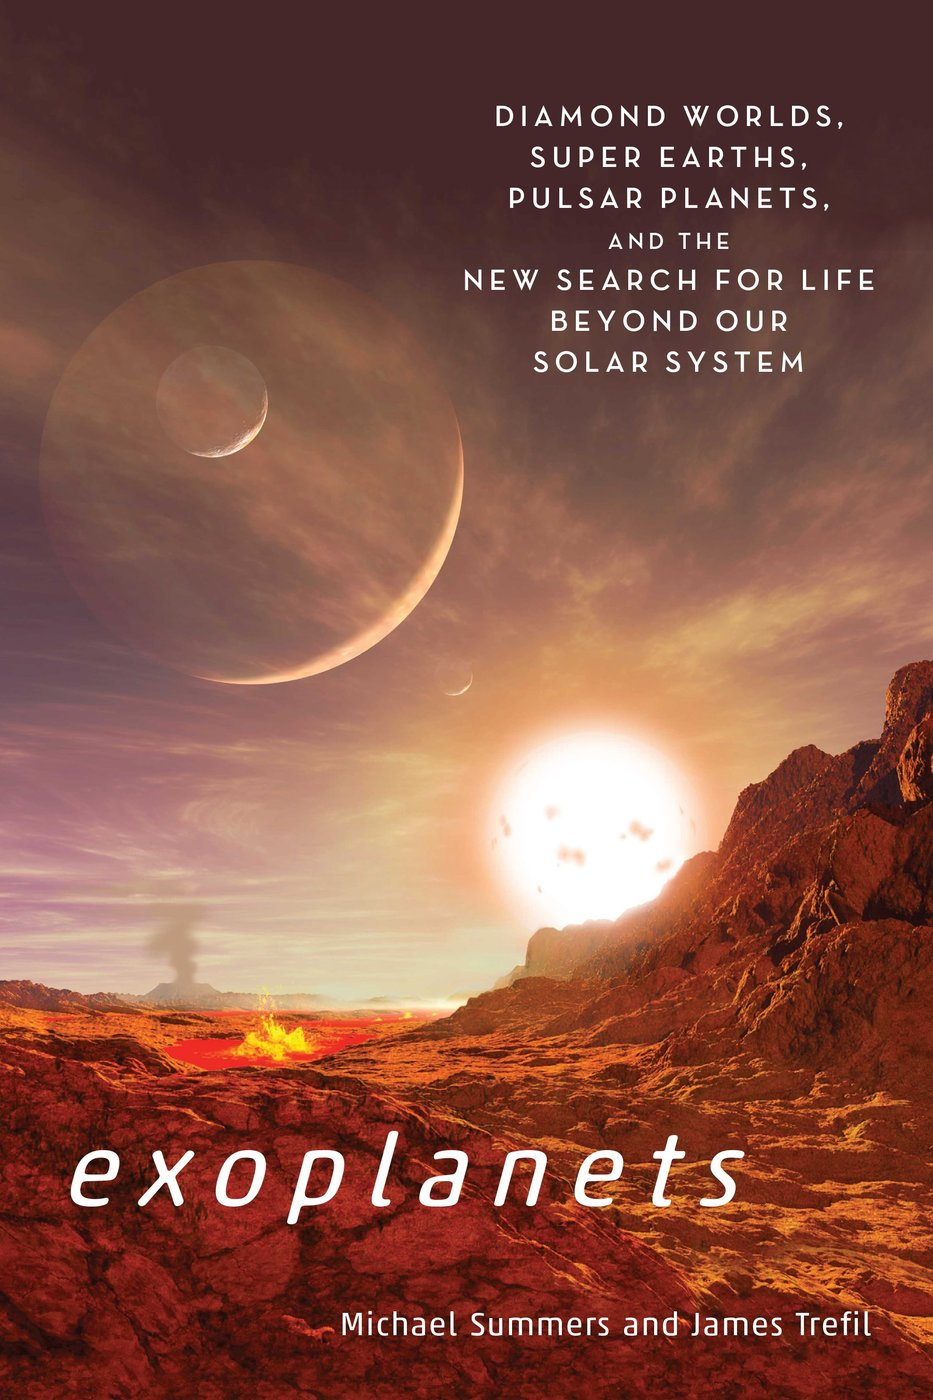 Exoplanets (Smithsonian Books, 2017)